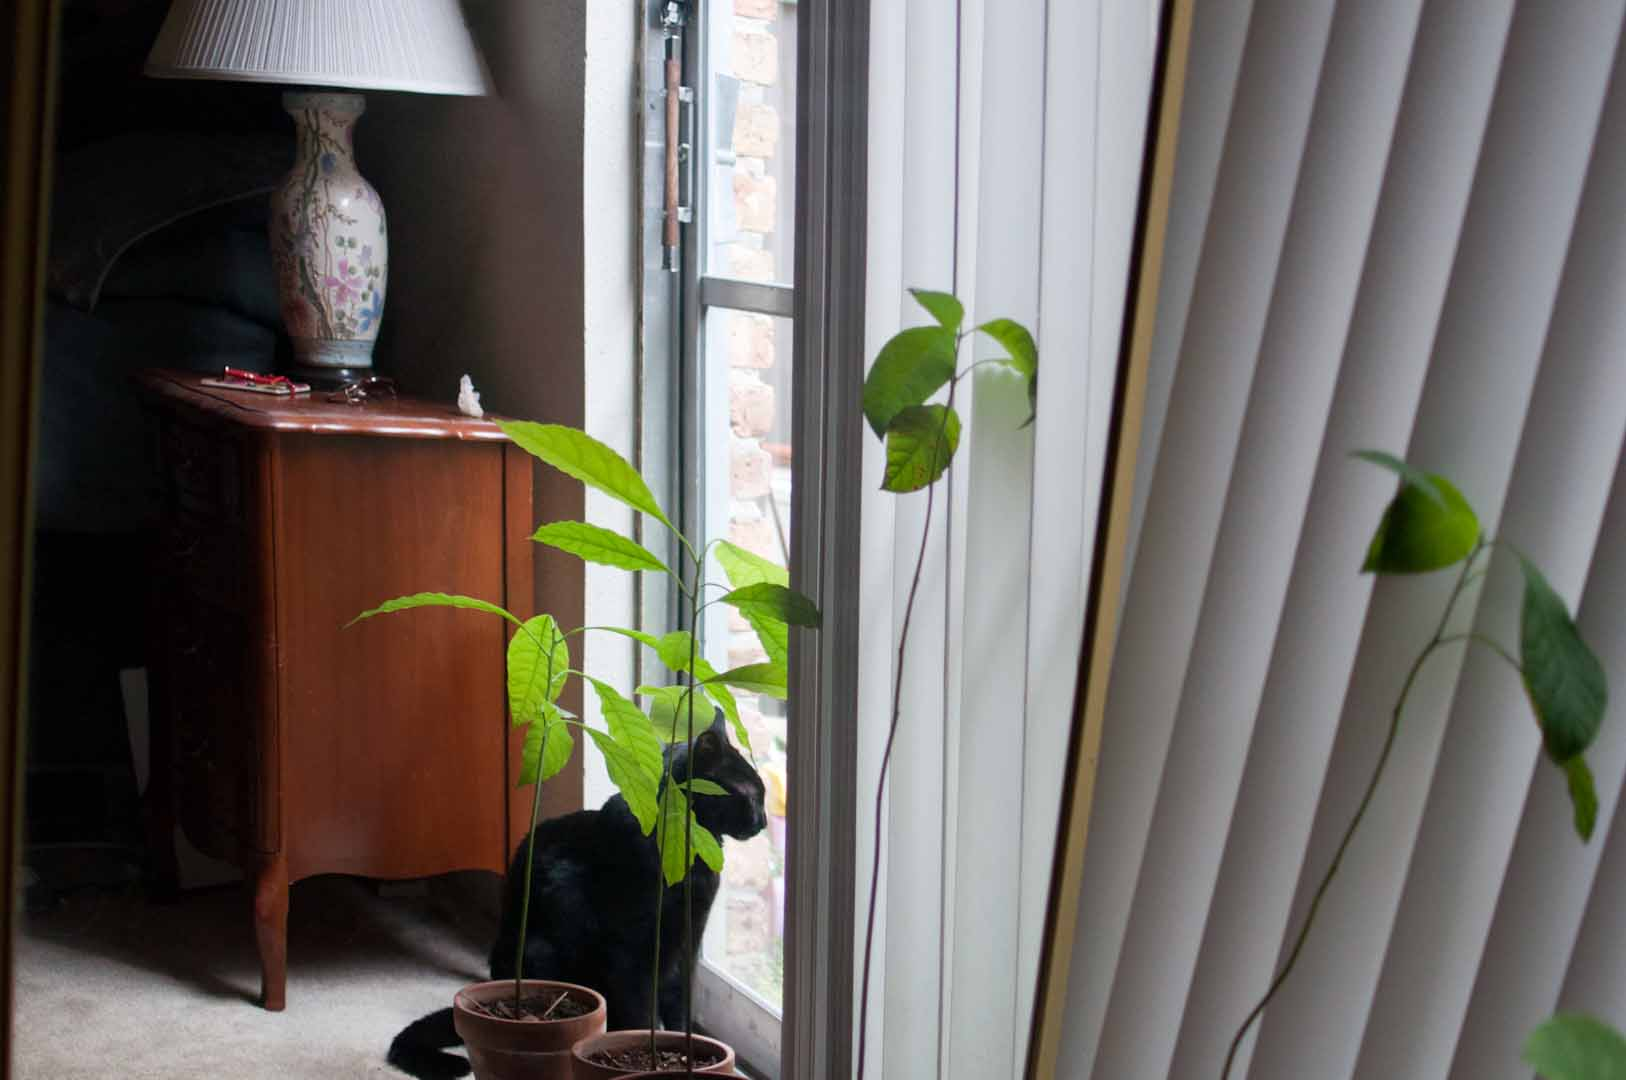 how to grow an avocado tree from a seed likely by sea. Black Bedroom Furniture Sets. Home Design Ideas